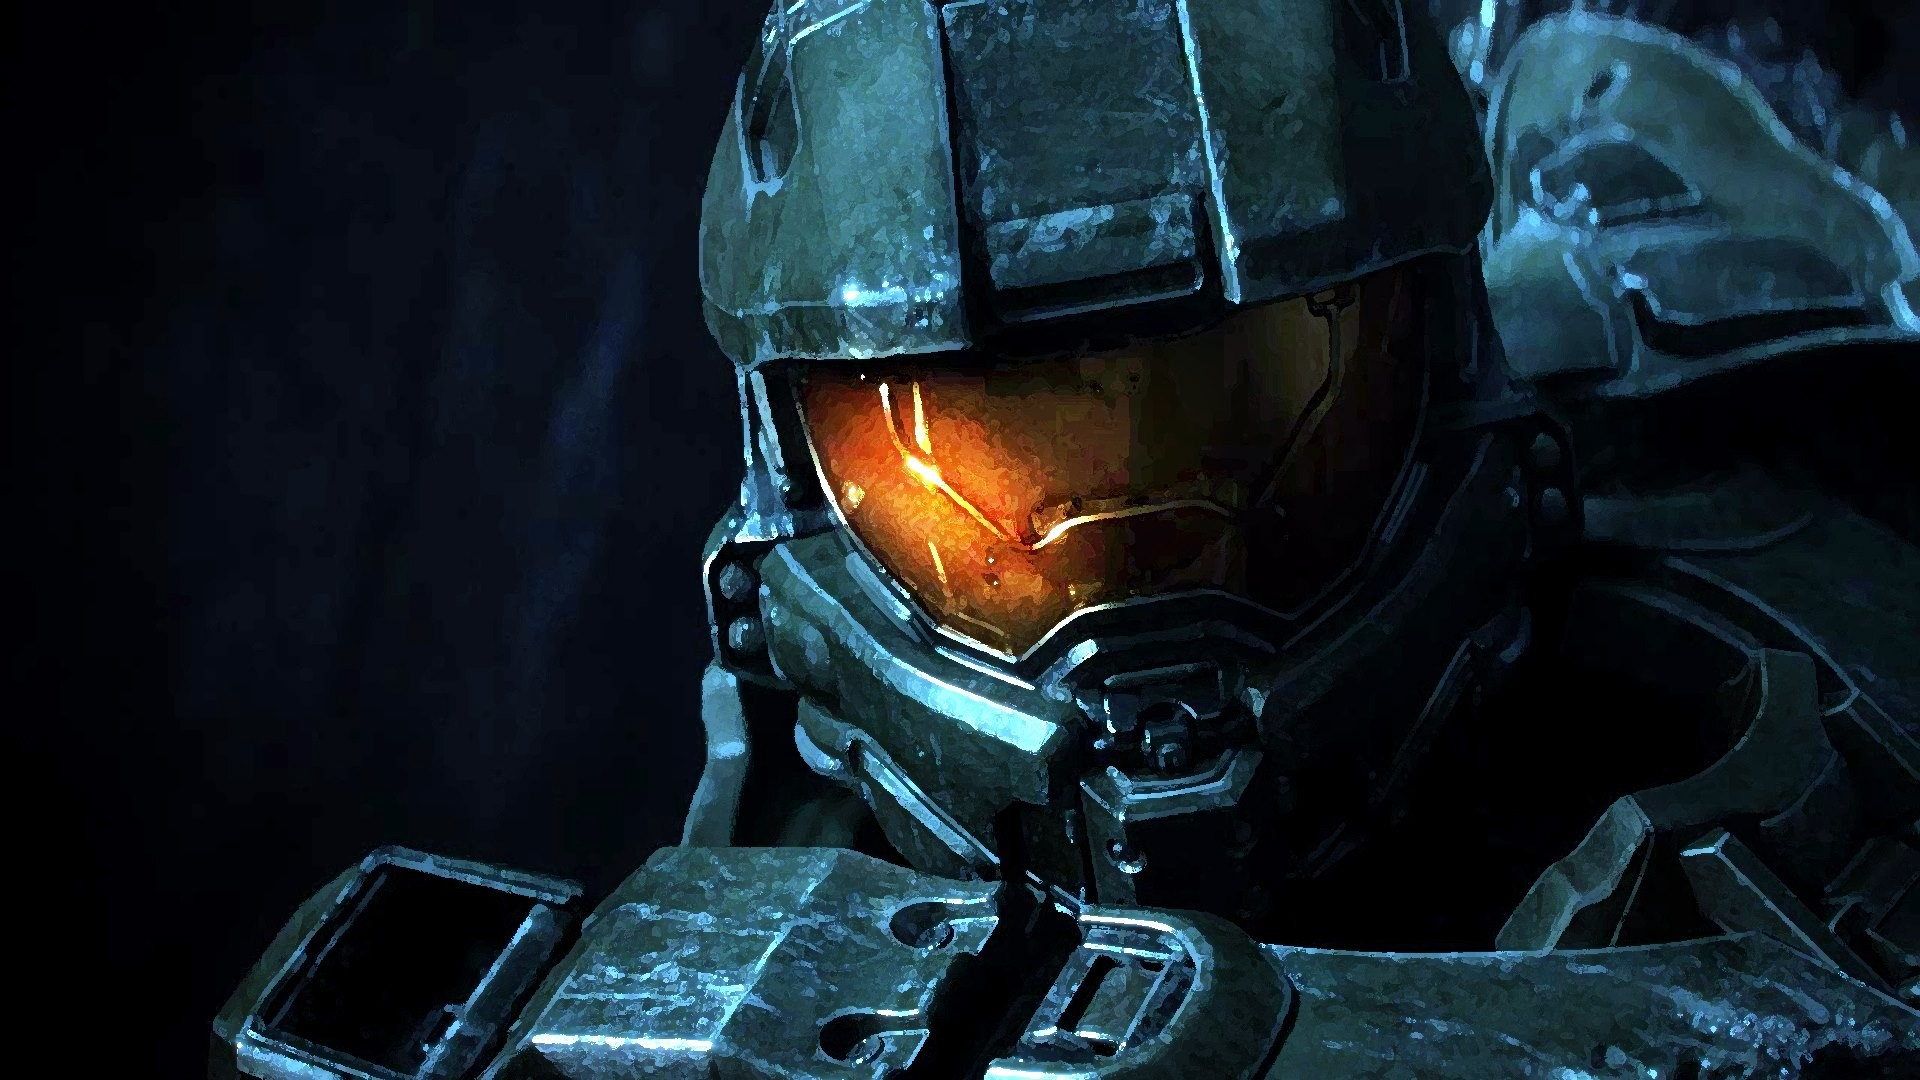 Halo-4-Images.jpg (1920×1080)   games   Pinterest   Wallpaper, Halo game  and Gaming